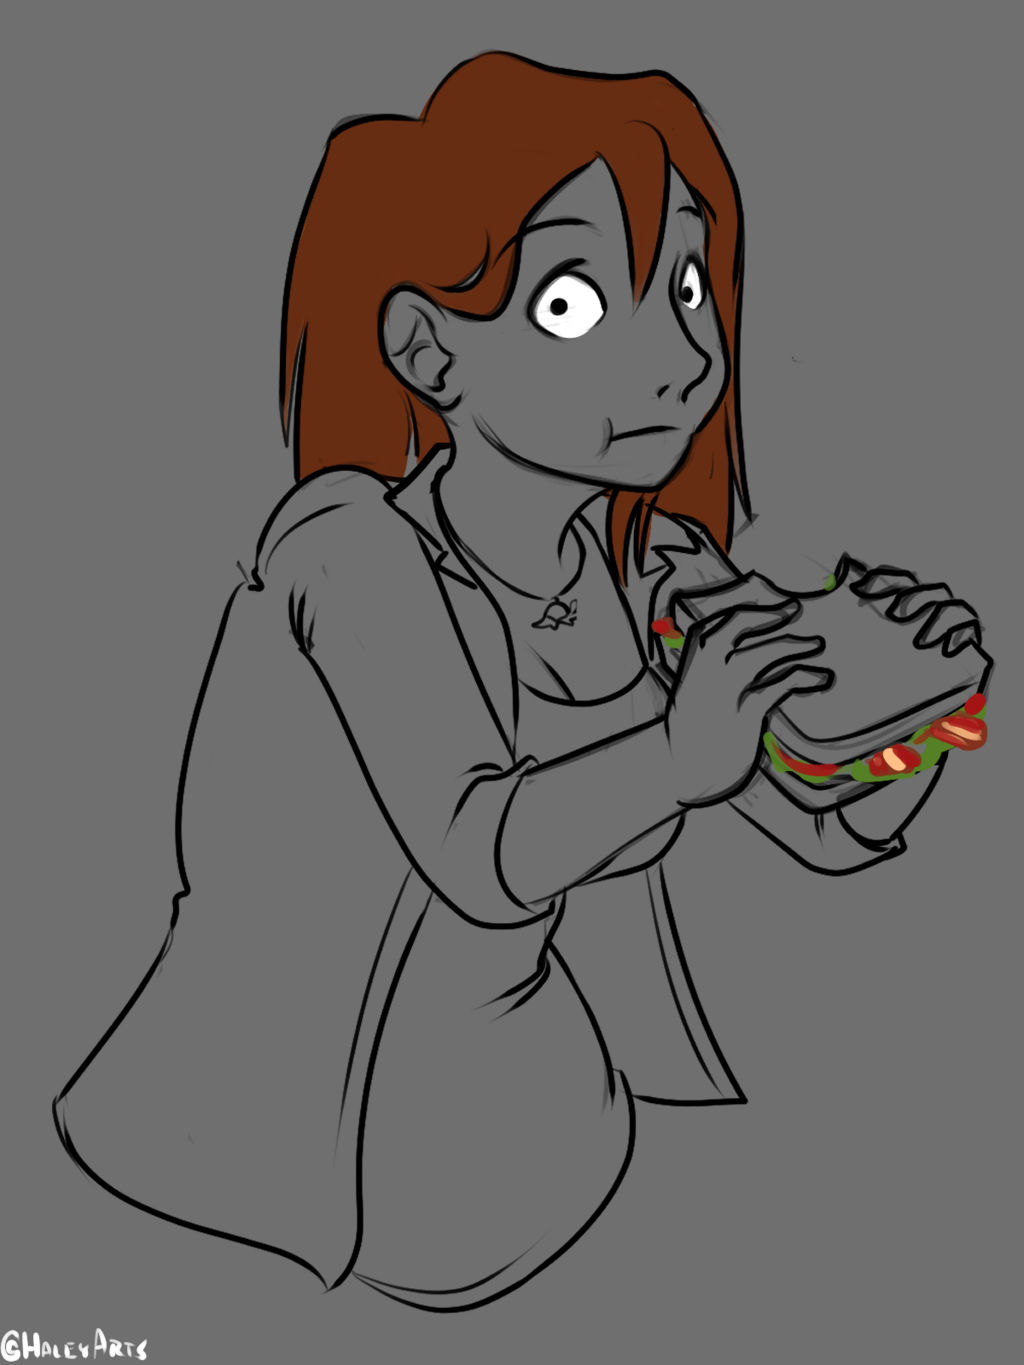 Connie Can't Enjoy Her Sandwich